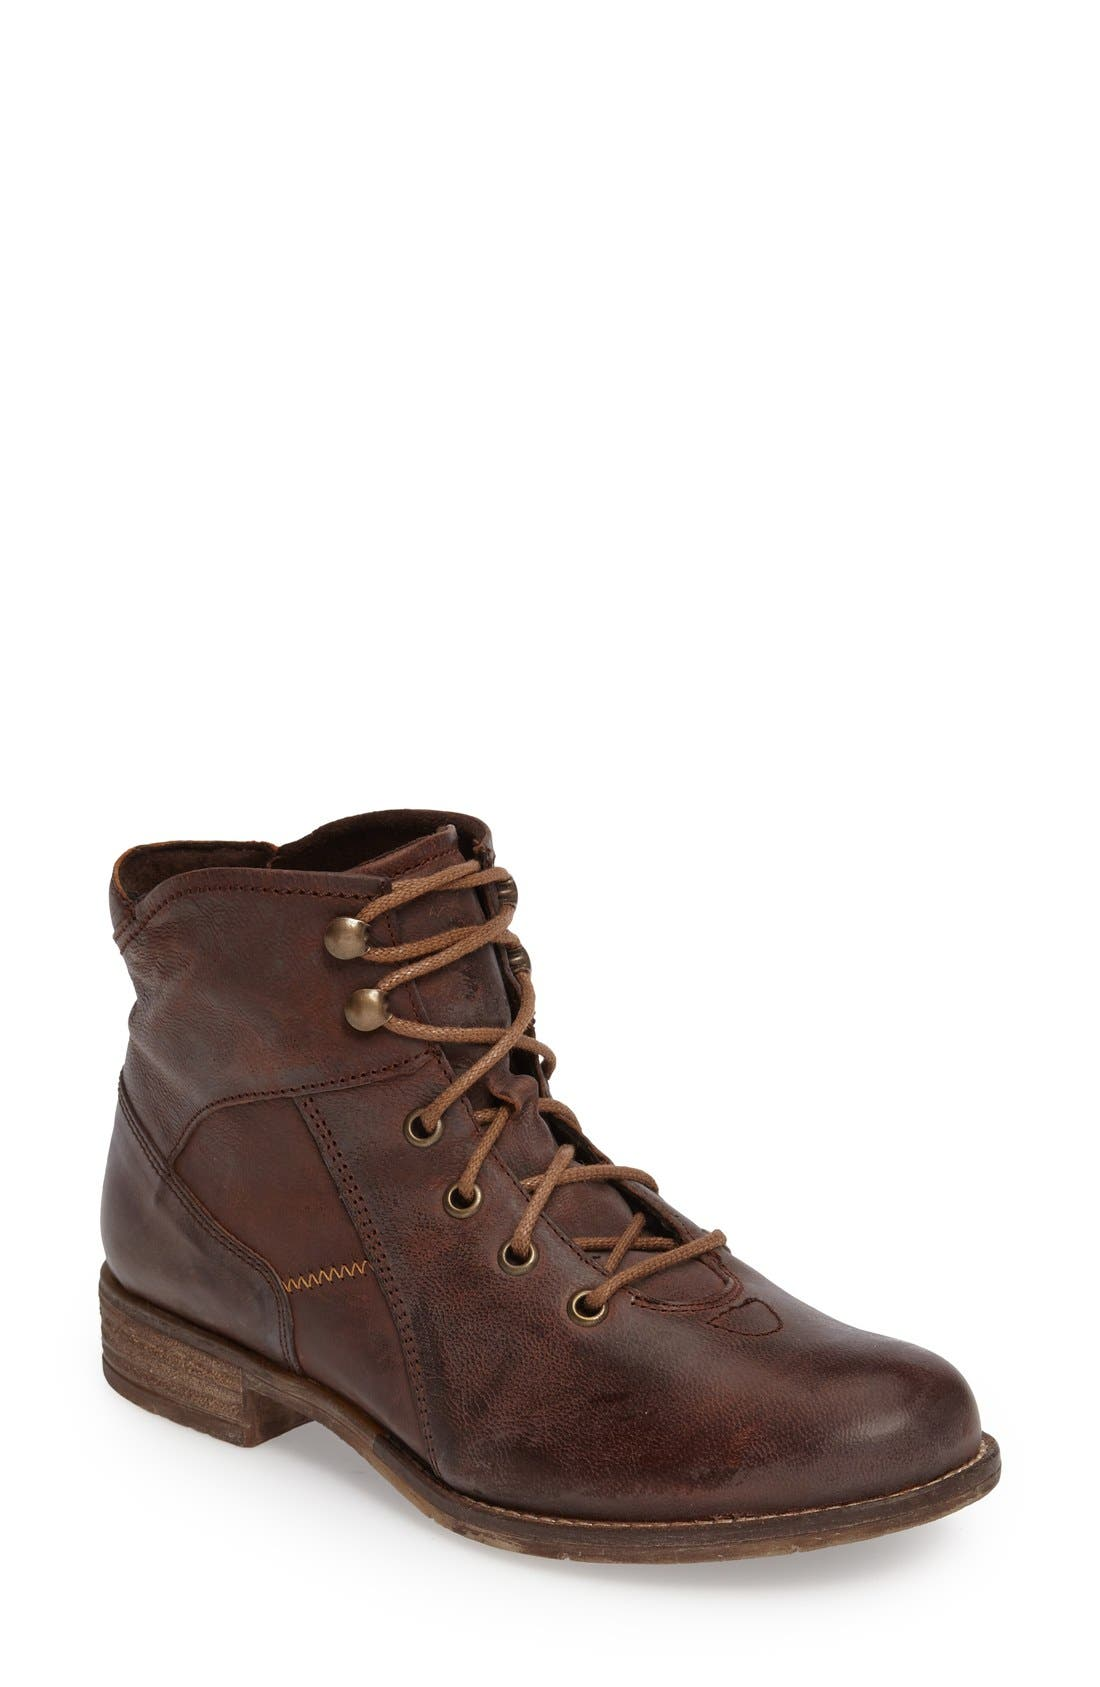 Sienna 11 Boot,                         Main,                         color, Moro Leather